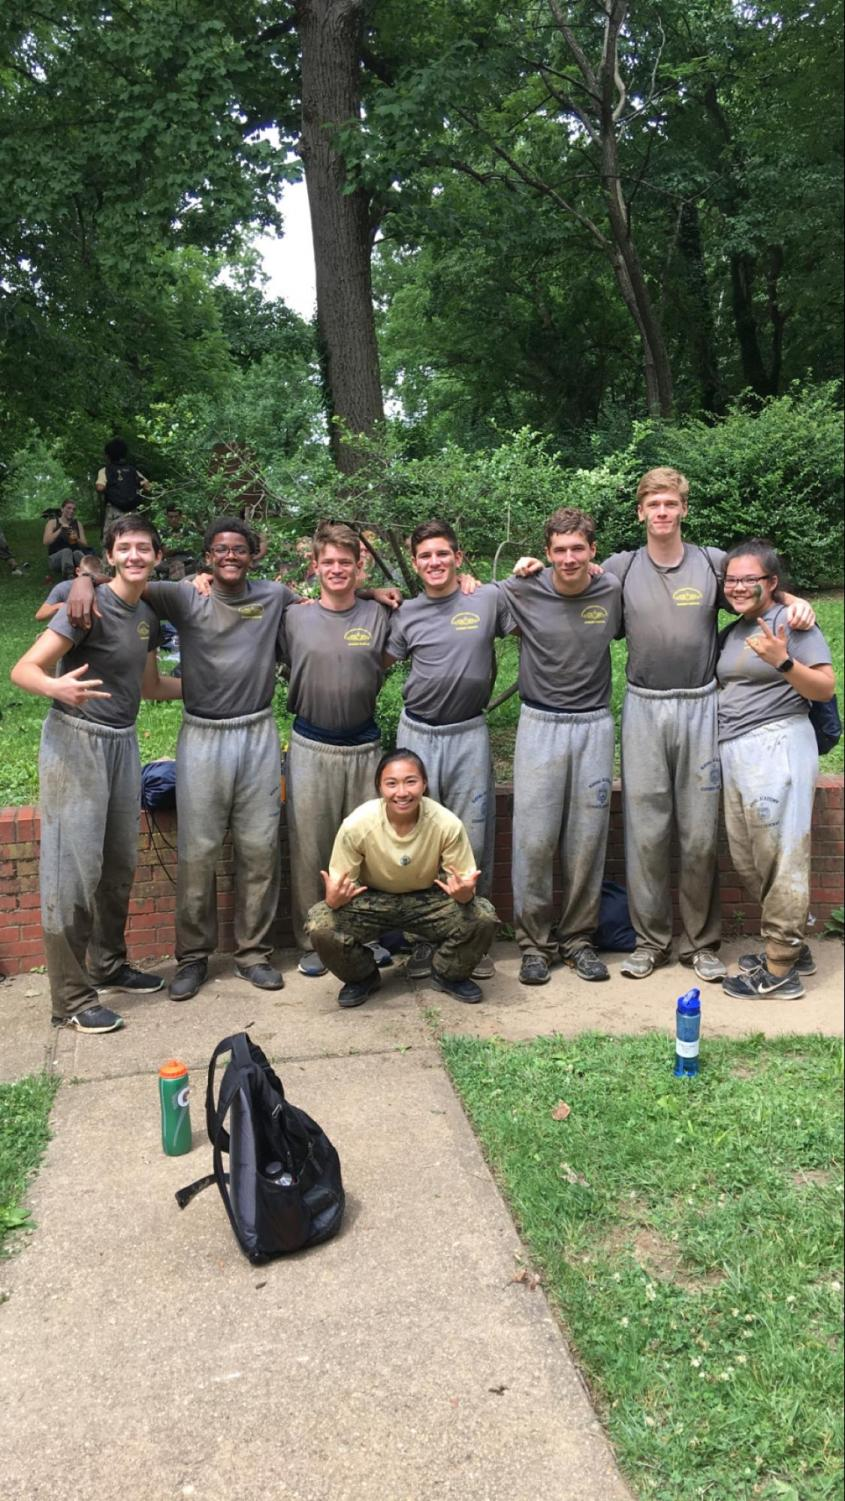 SBP Senior Seun Eisape (second from left) participates in a one-mile-long obstacle course in the woods with his squad.